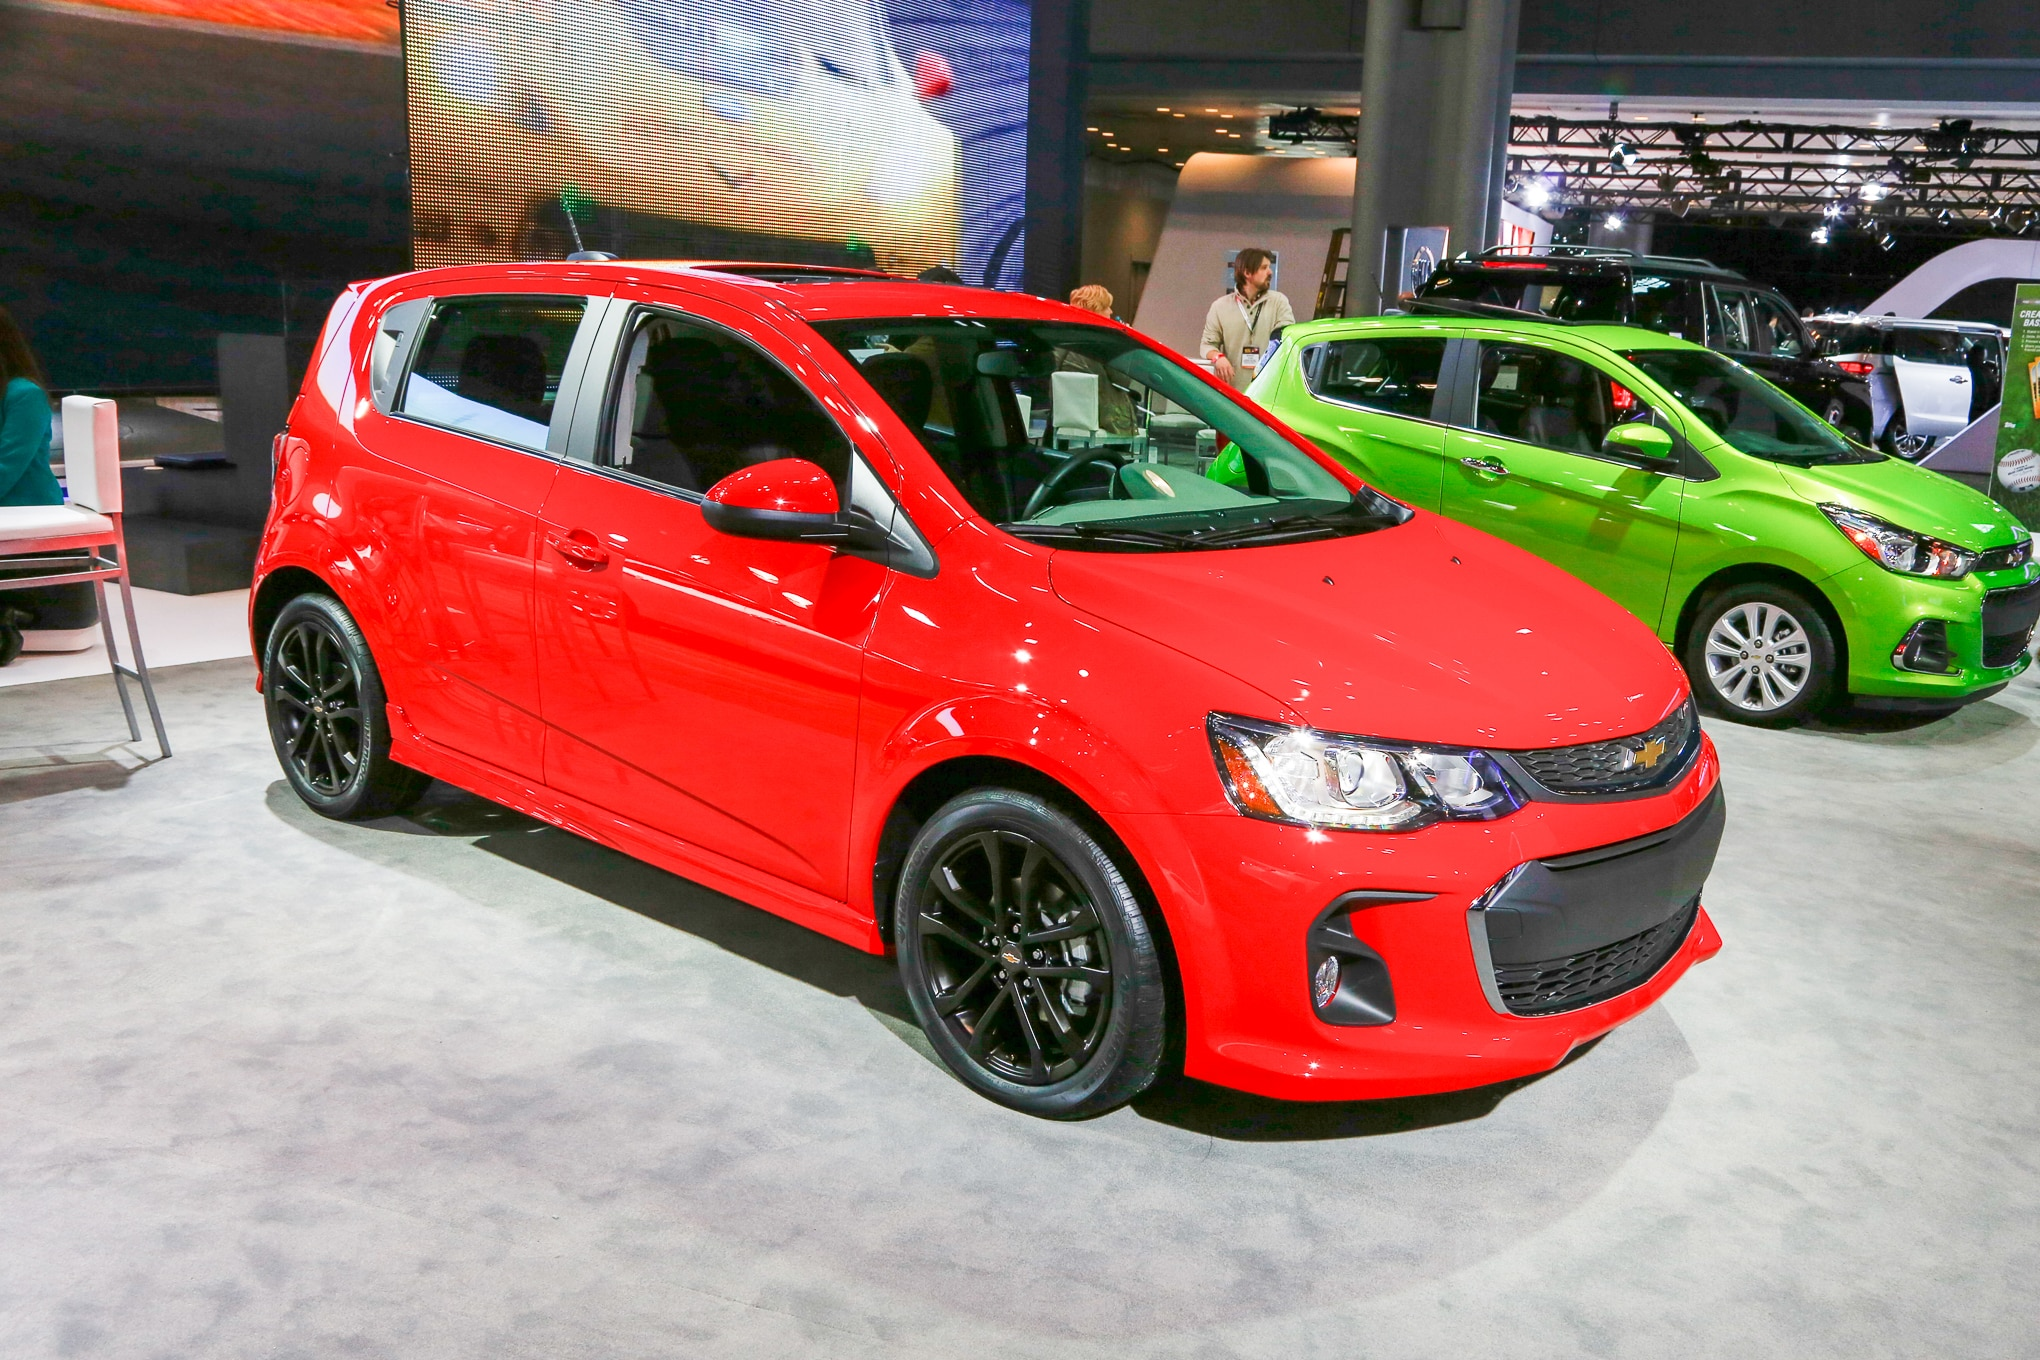 2017 Chevrolet Sonic Rs   2017 - 2018 Best Cars Reviews